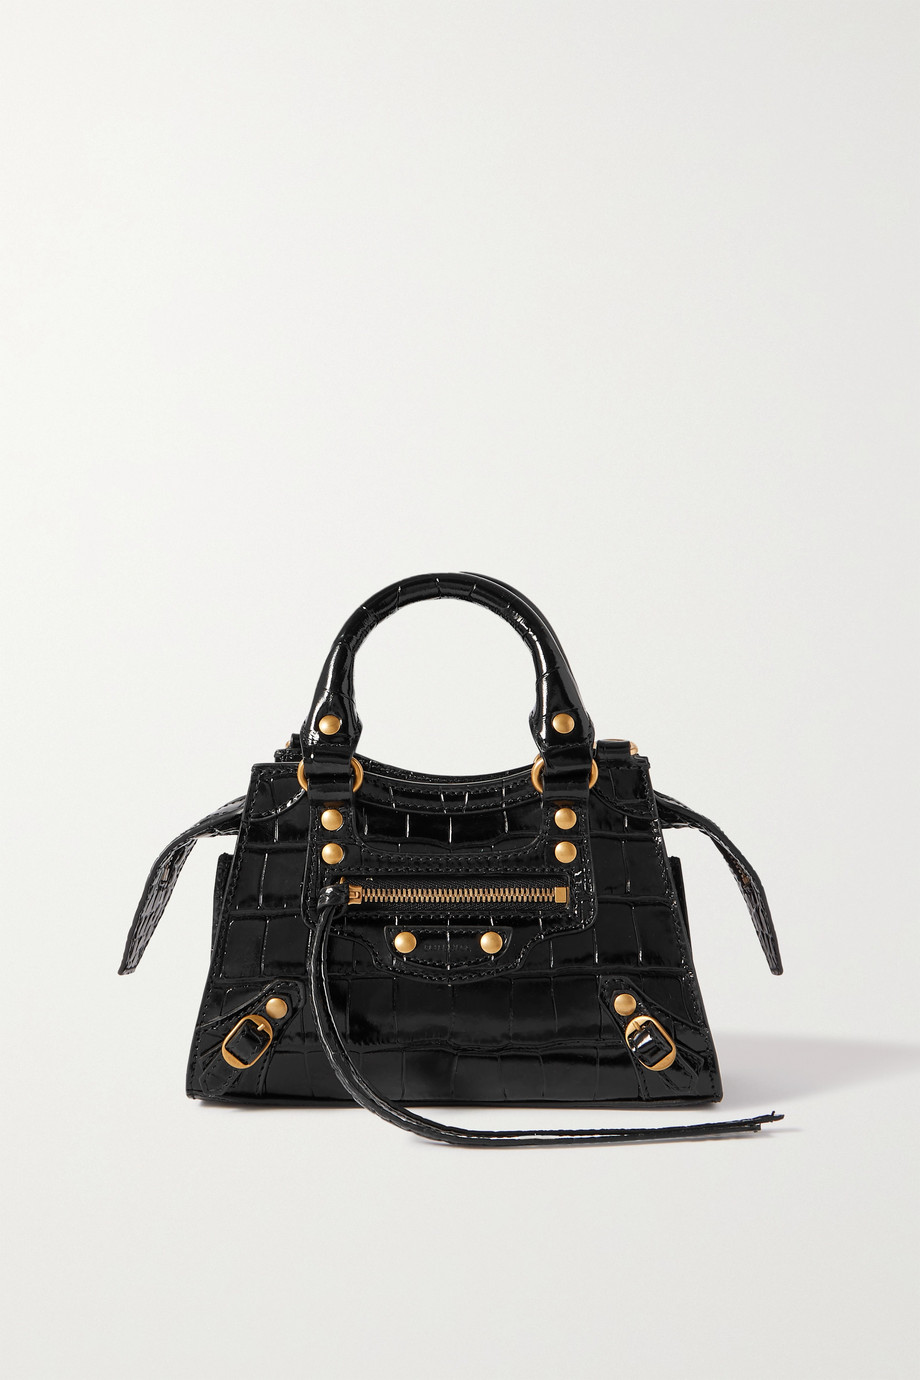 Balenciaga Neo Classic City nano croc-effect leather tote